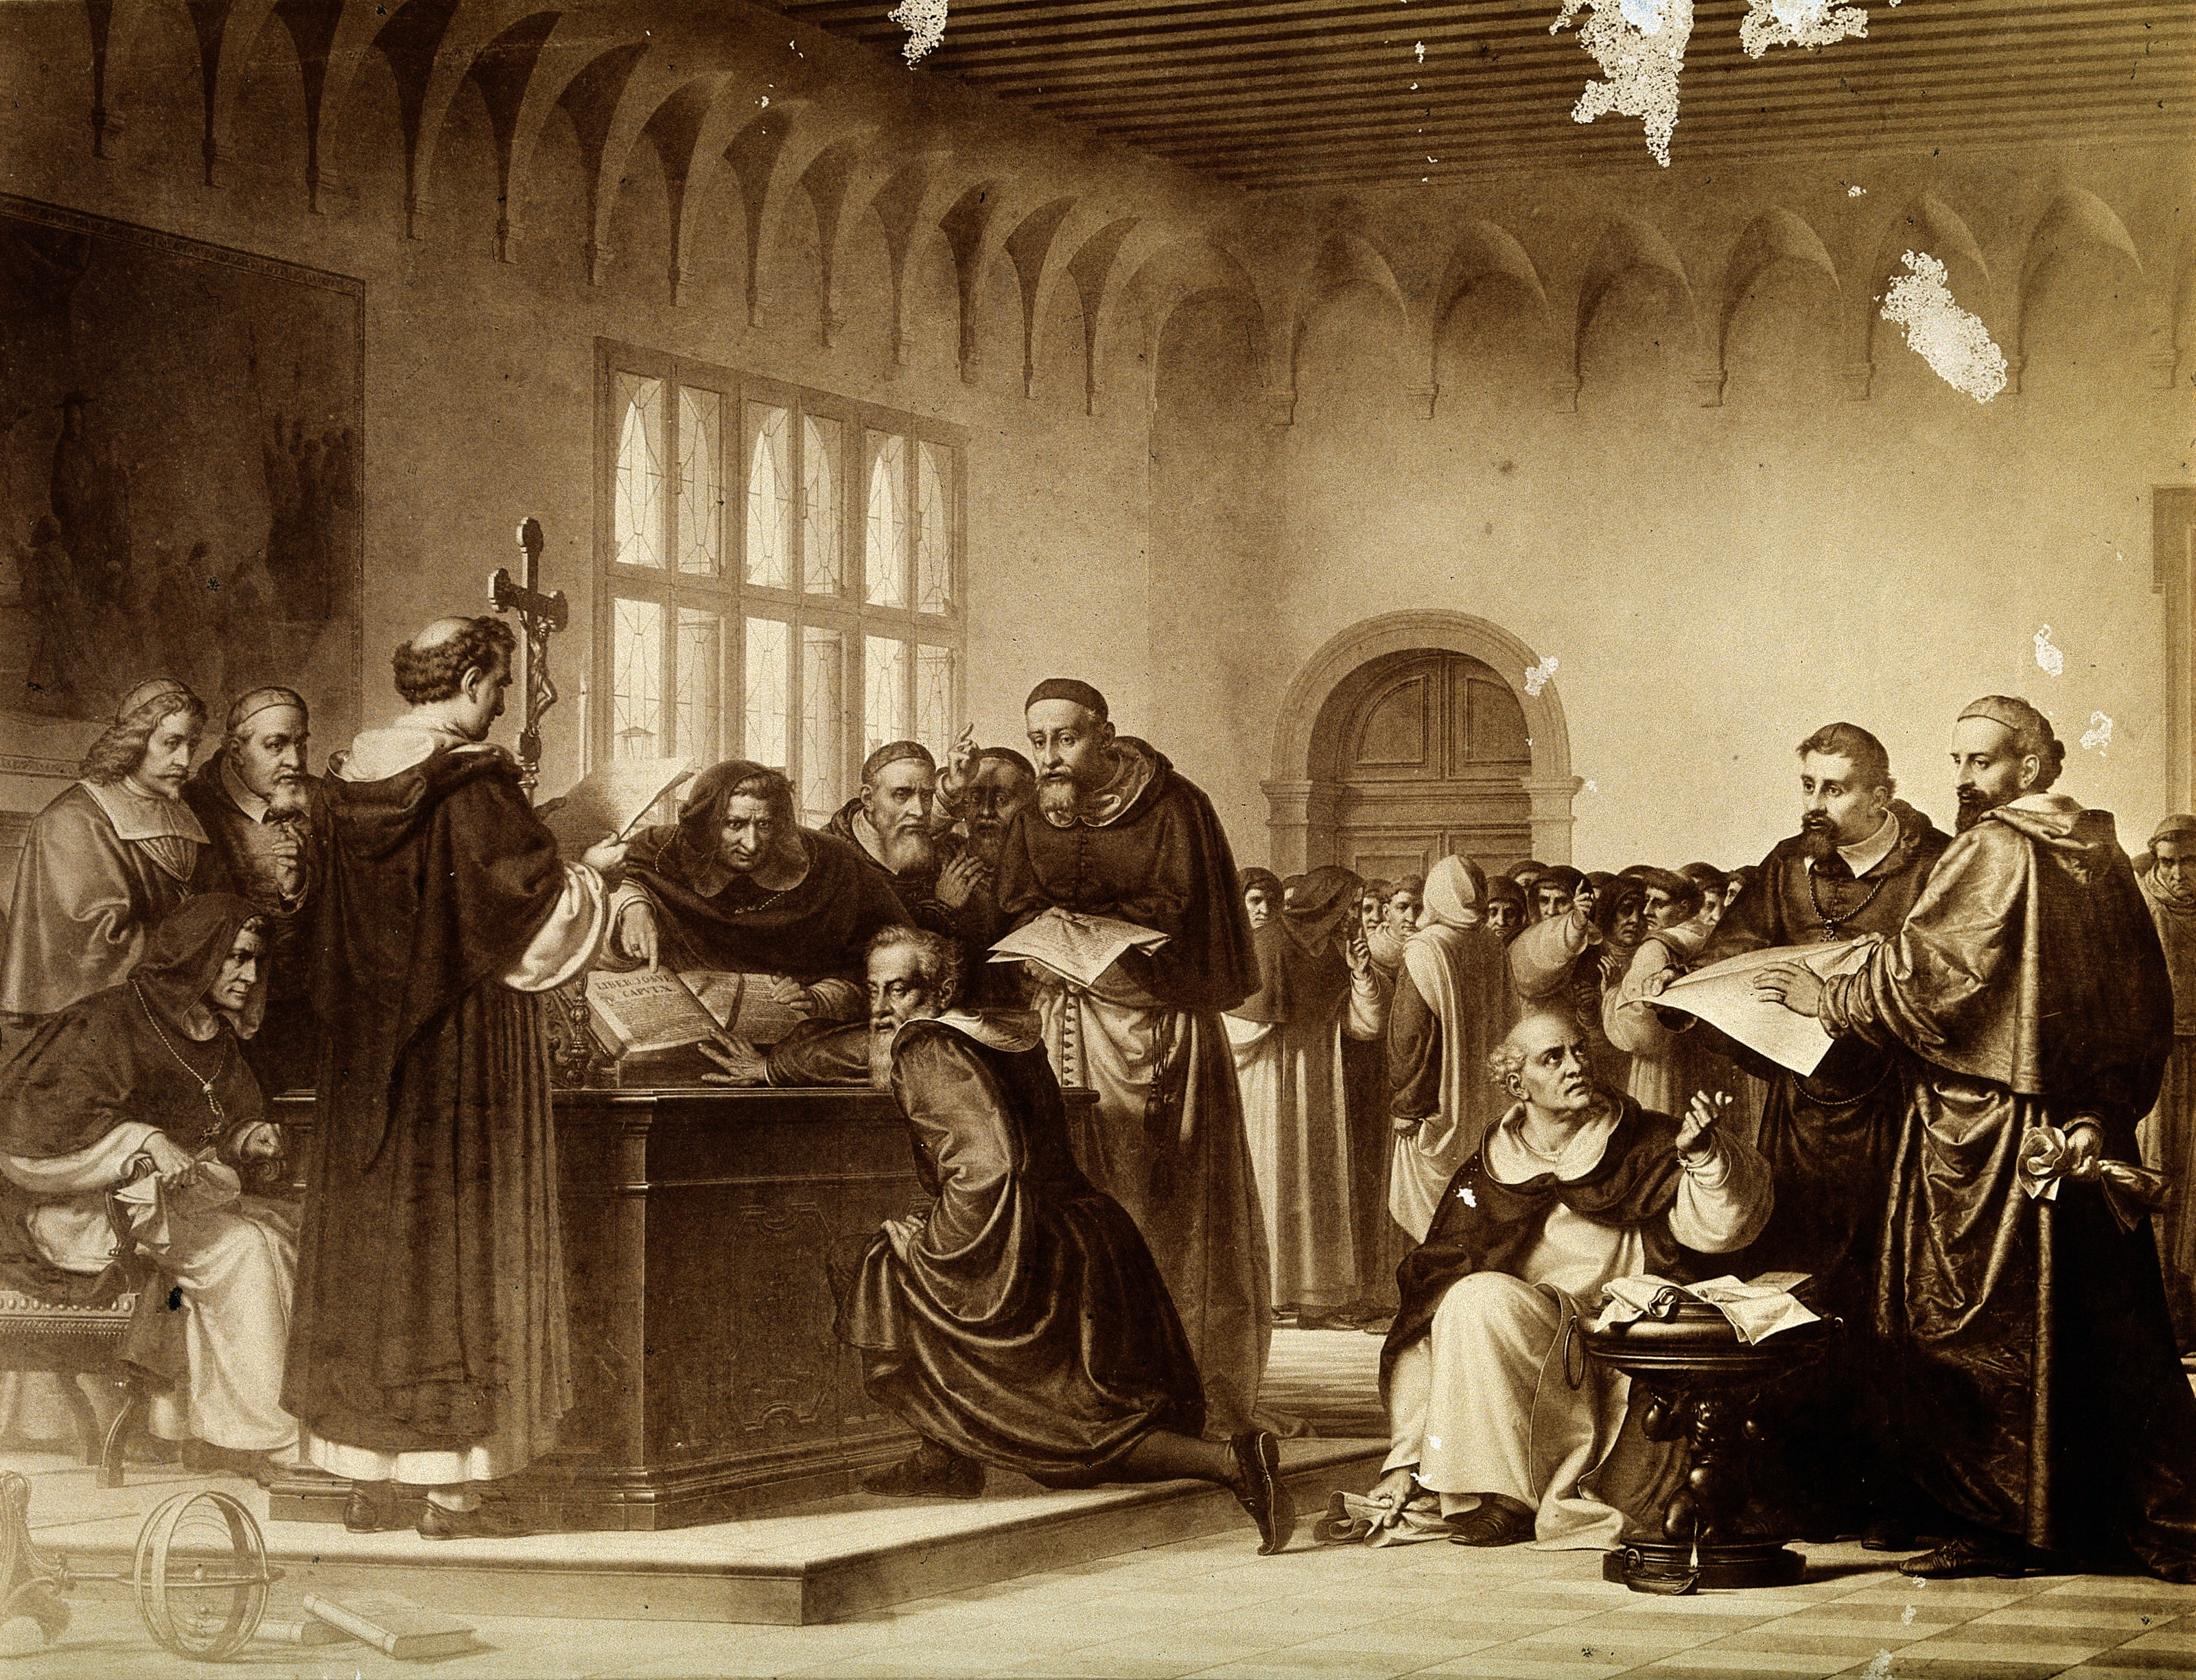 an introduction to the history of the heresy of galileo One of the first suggestions of heresy that galileo had to deal films about galileo and the galileo affair galileo affair: a documentary history.